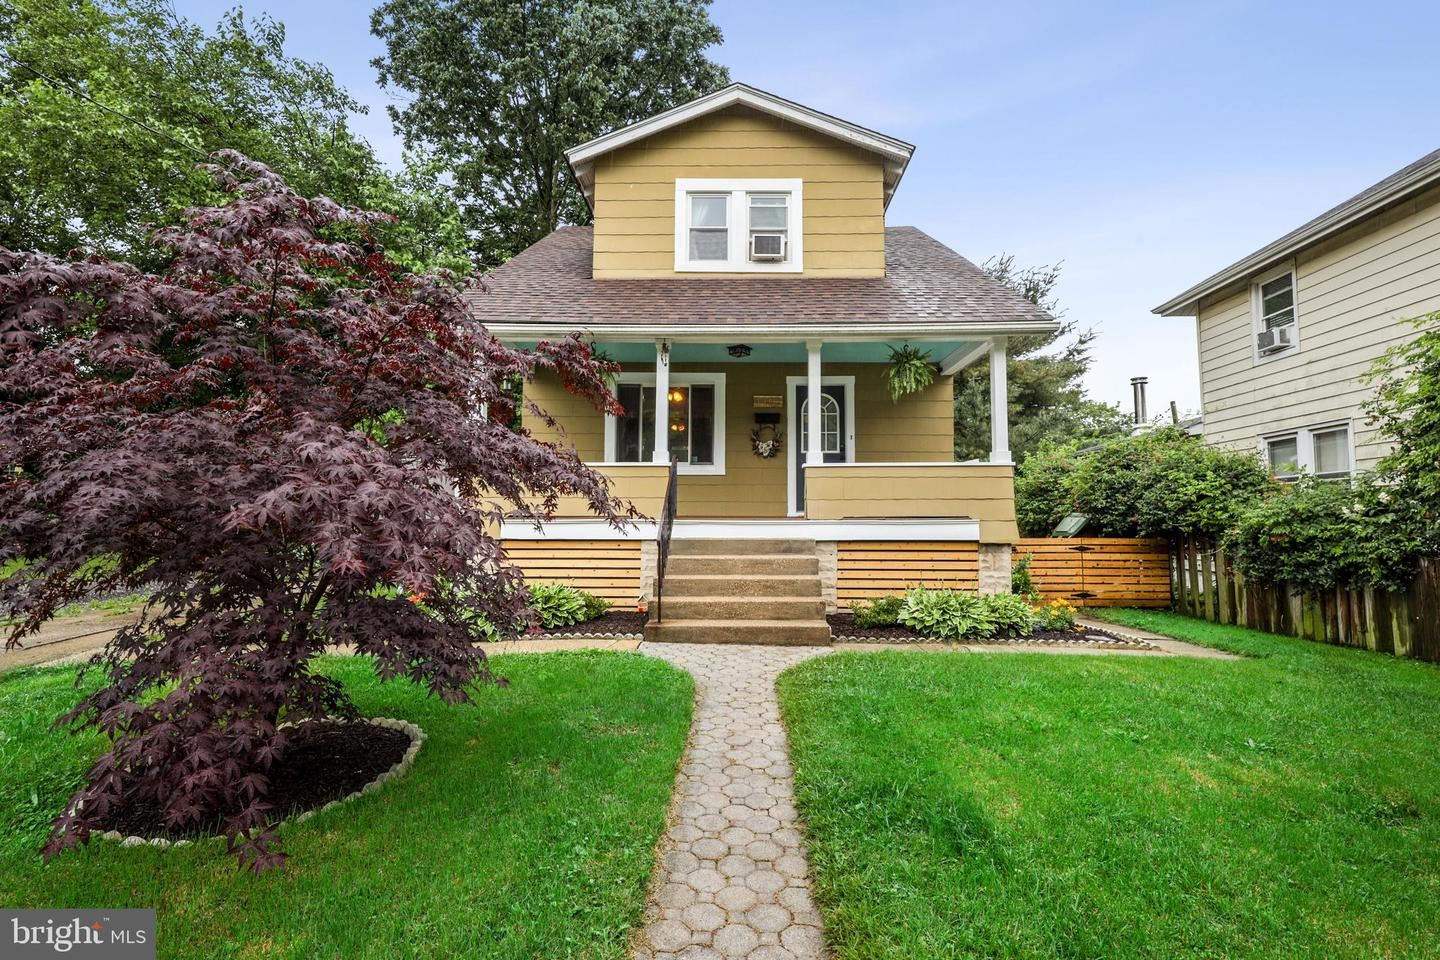 4403 CLYDESDALE AVE, Baltimore, MD 21211 - MLS#: MDBA552960